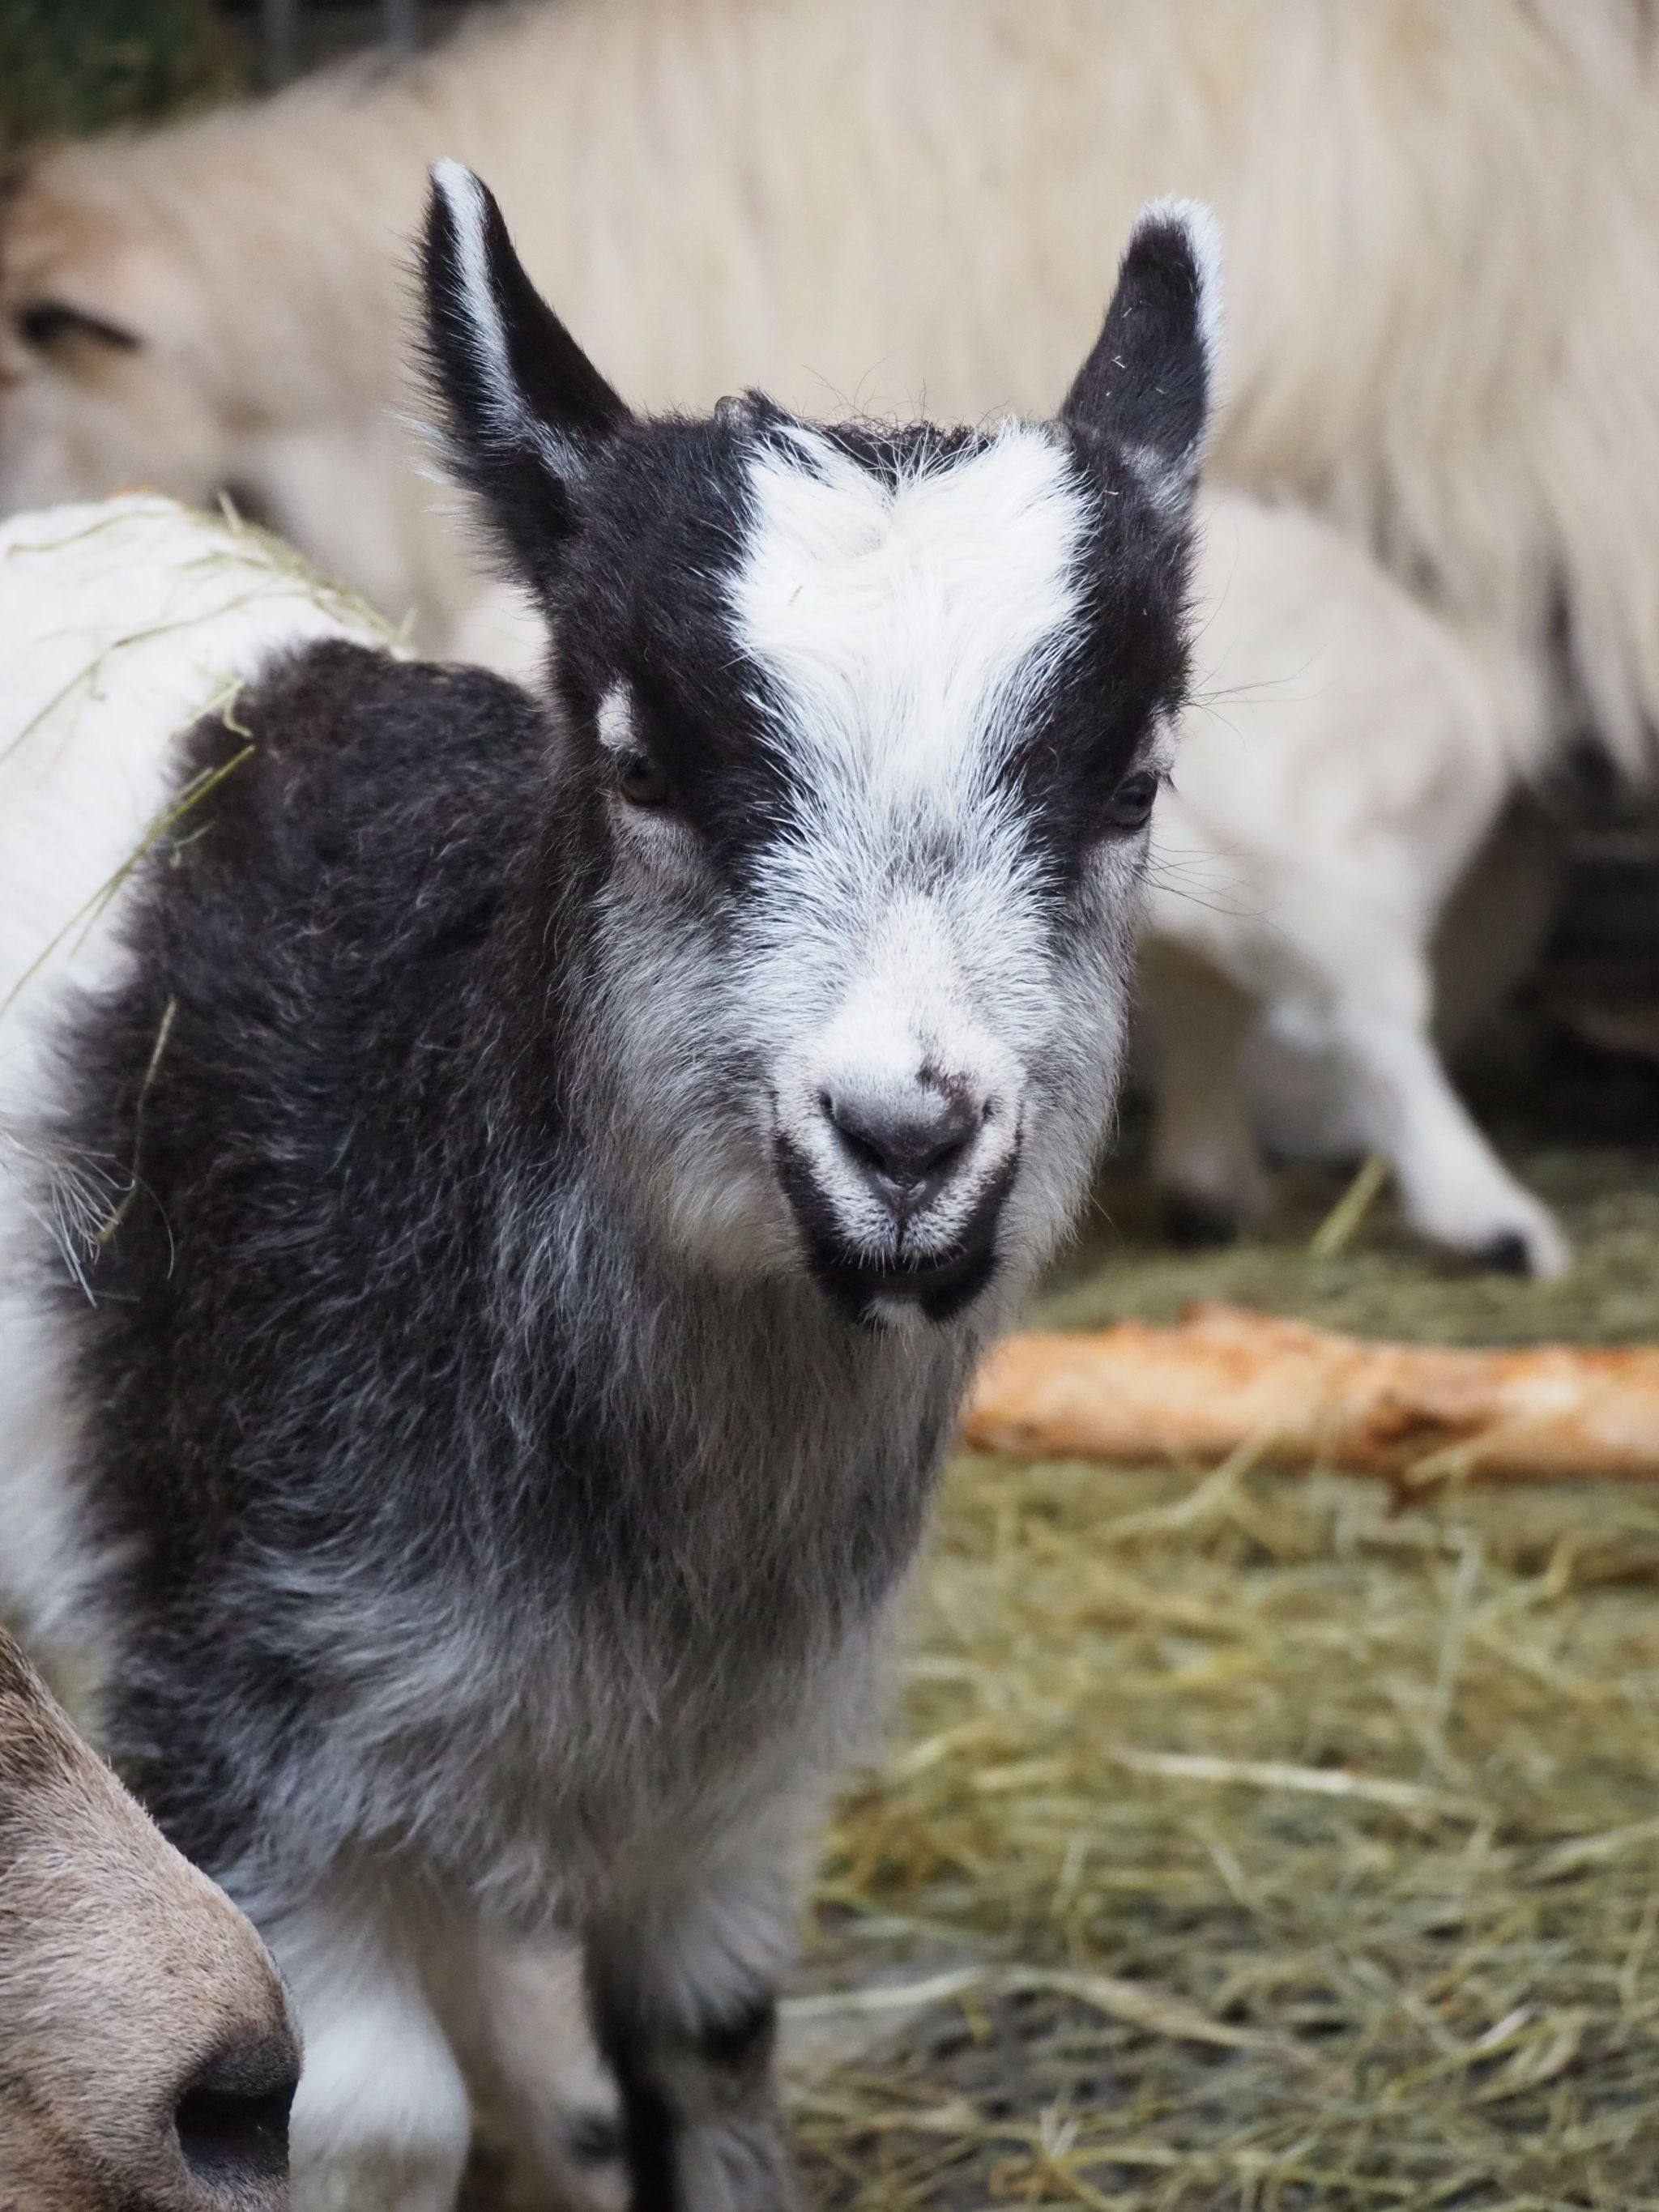 portrait of a baby goat